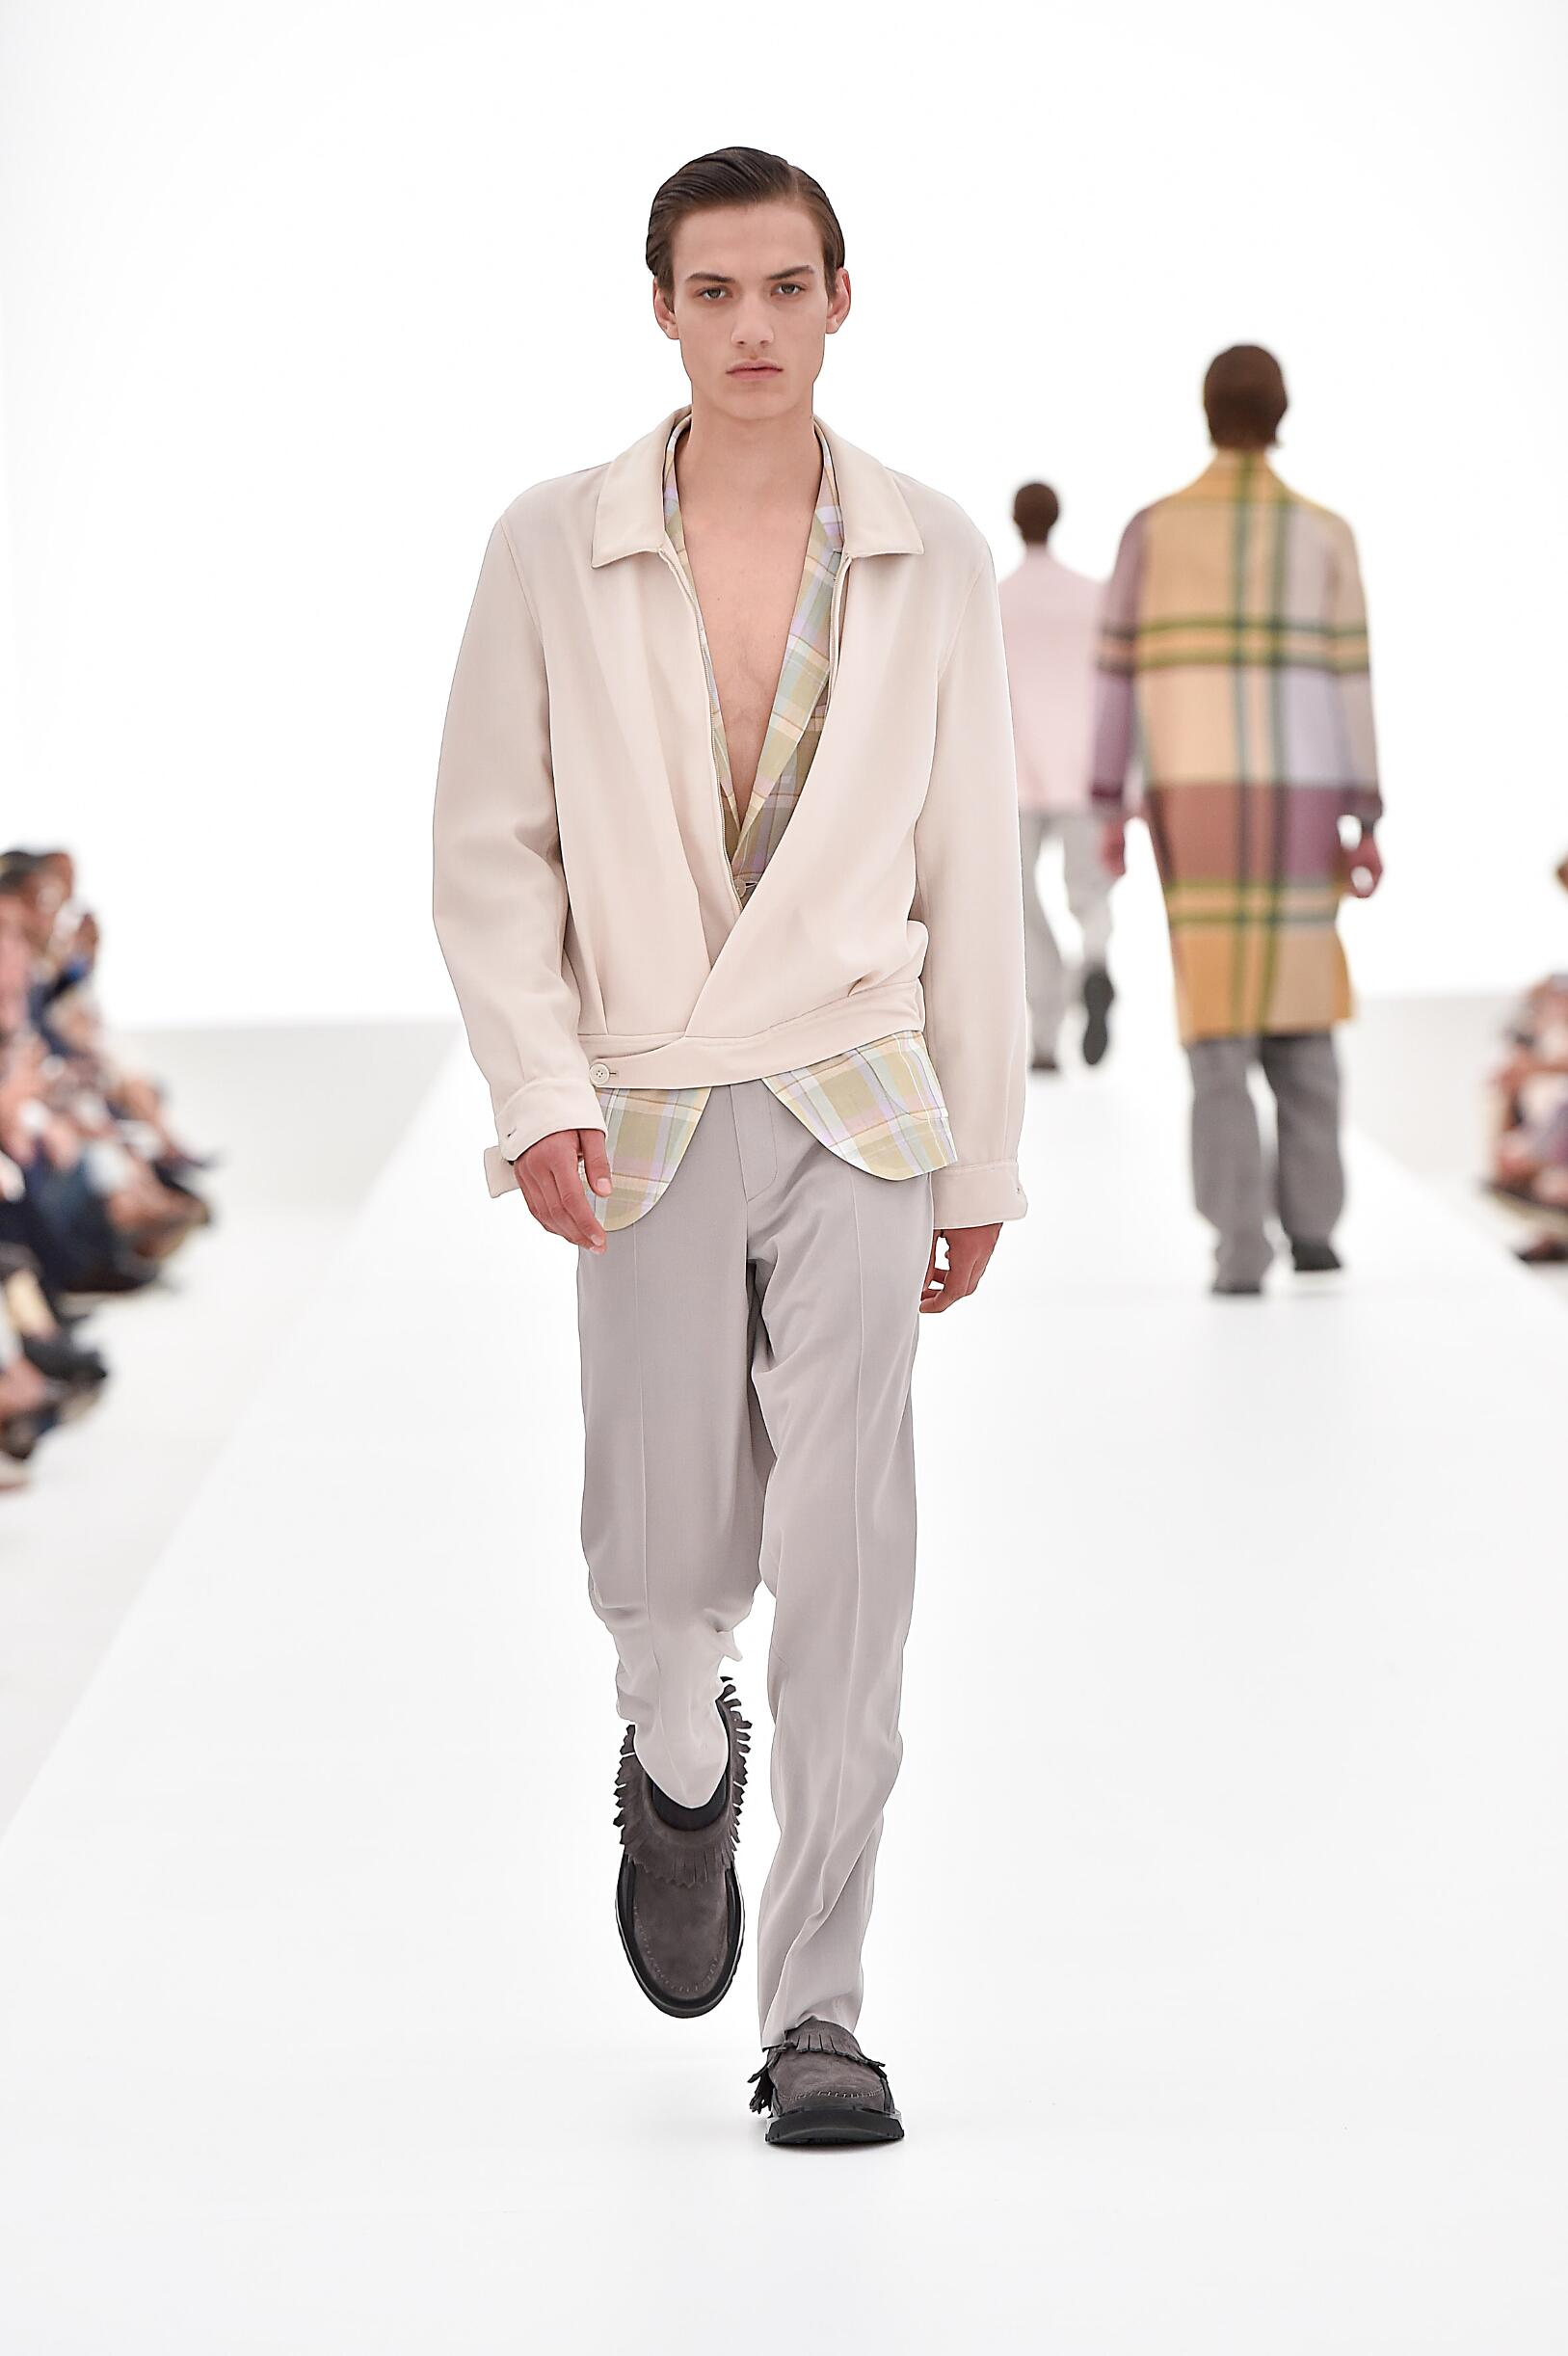 Spring Fashion 2016 Ermenegildo Zegna Couture Collection